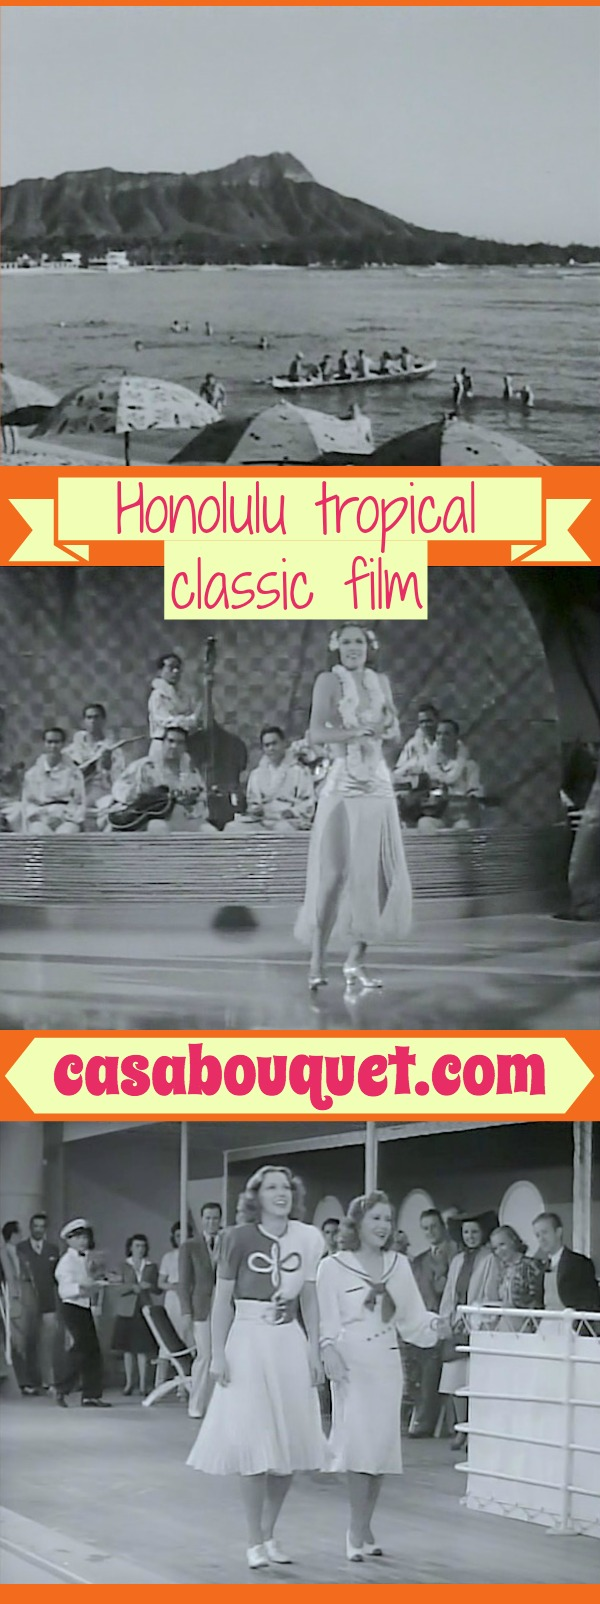 A rich movie actor and a Hawaiian plantation owner trade places and get in romantic trouble. Eleanor Powell dances spectacularly! Lisa's Home Bijou: Honolulu (1939)